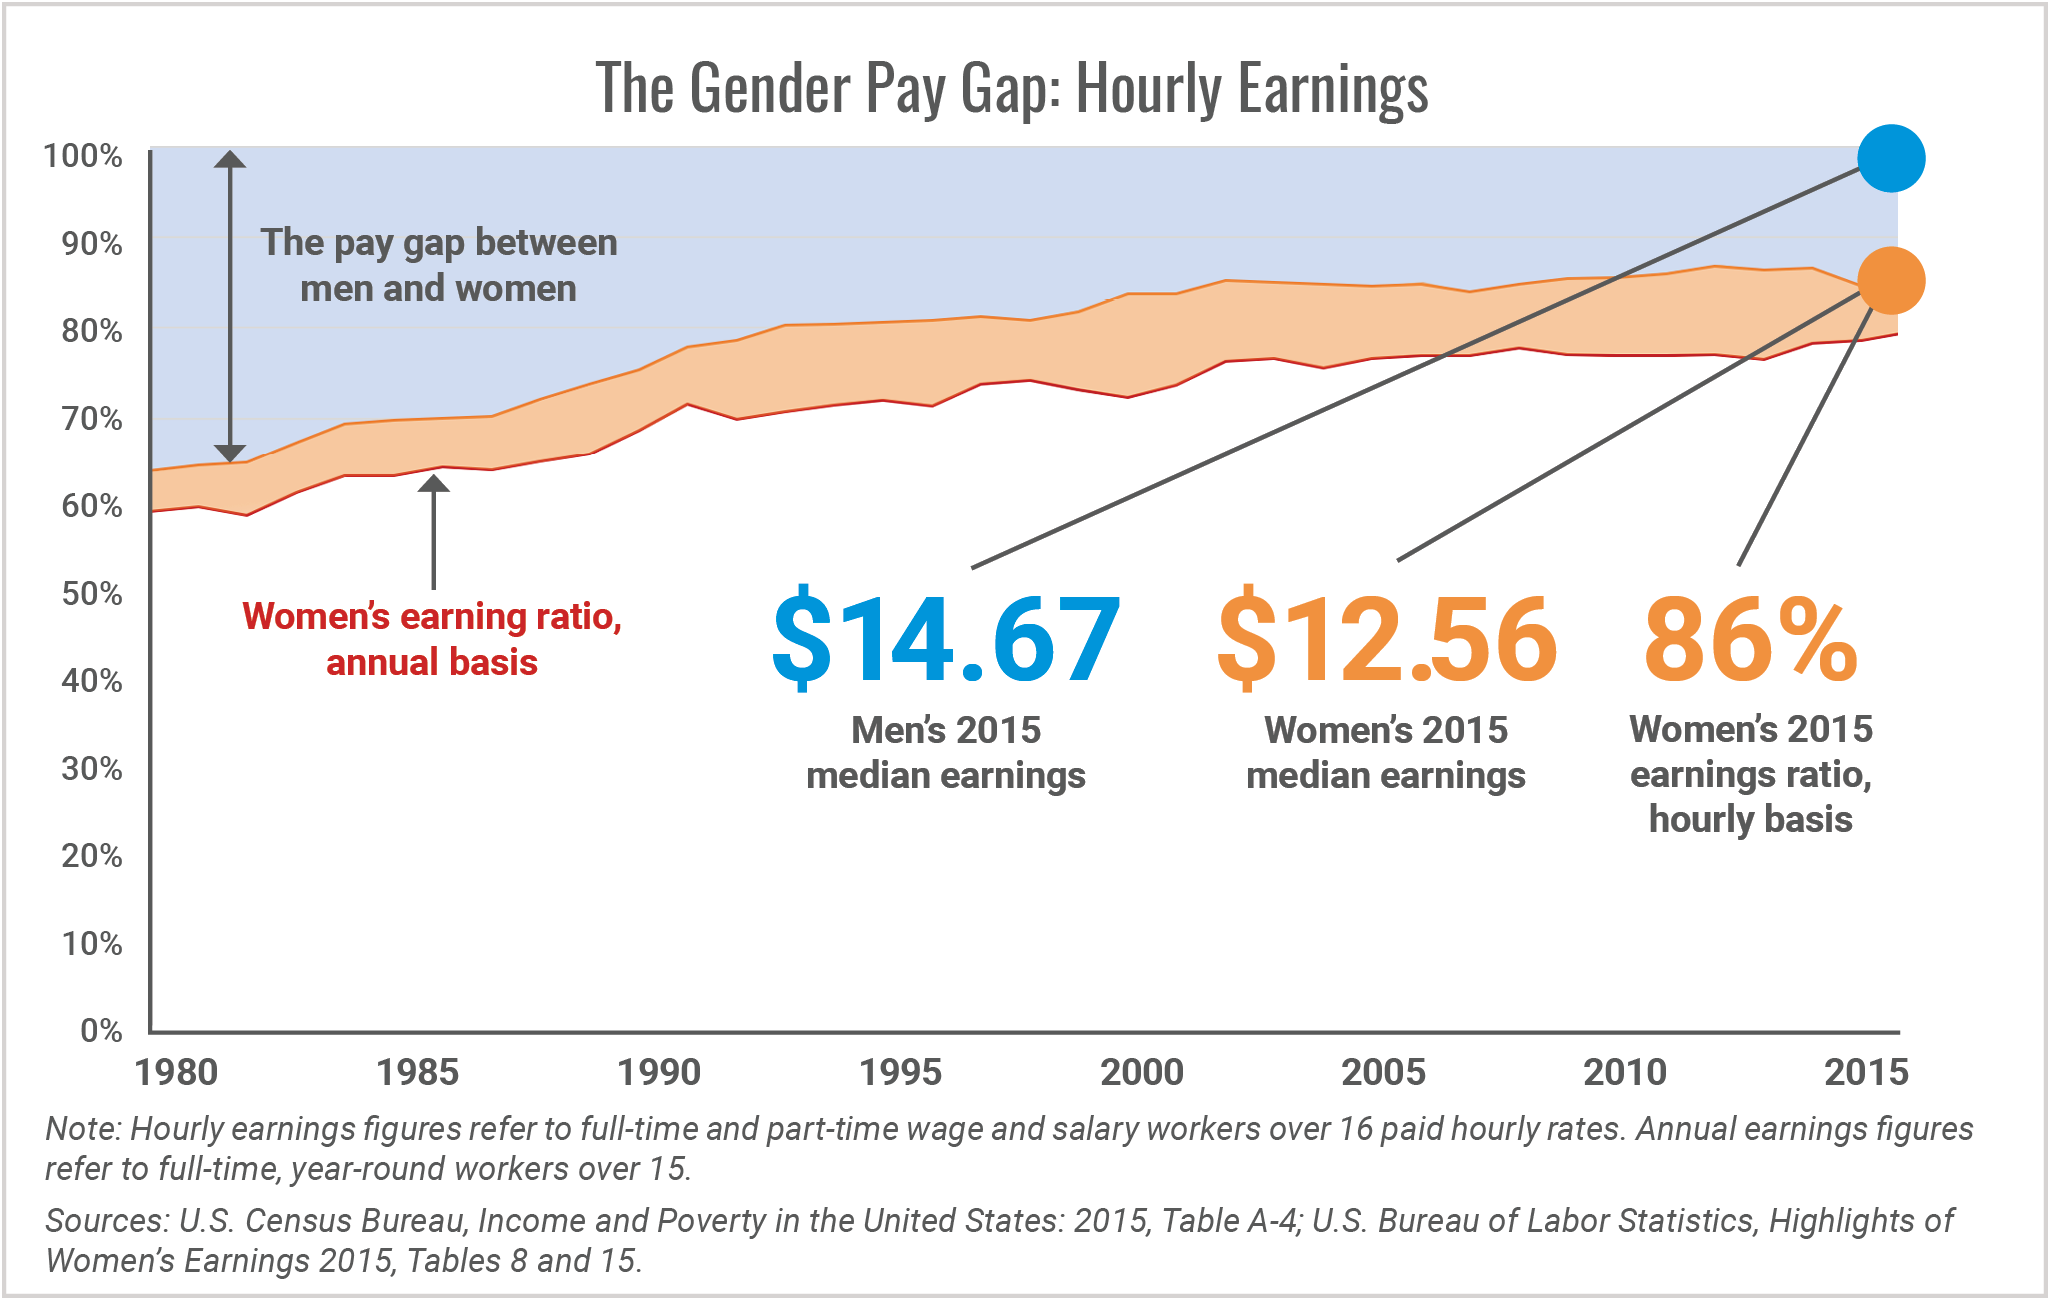 010 Research Paper Pay Gap The Gender Hourly Earnings1505304633 Top In India Wage Outline Full